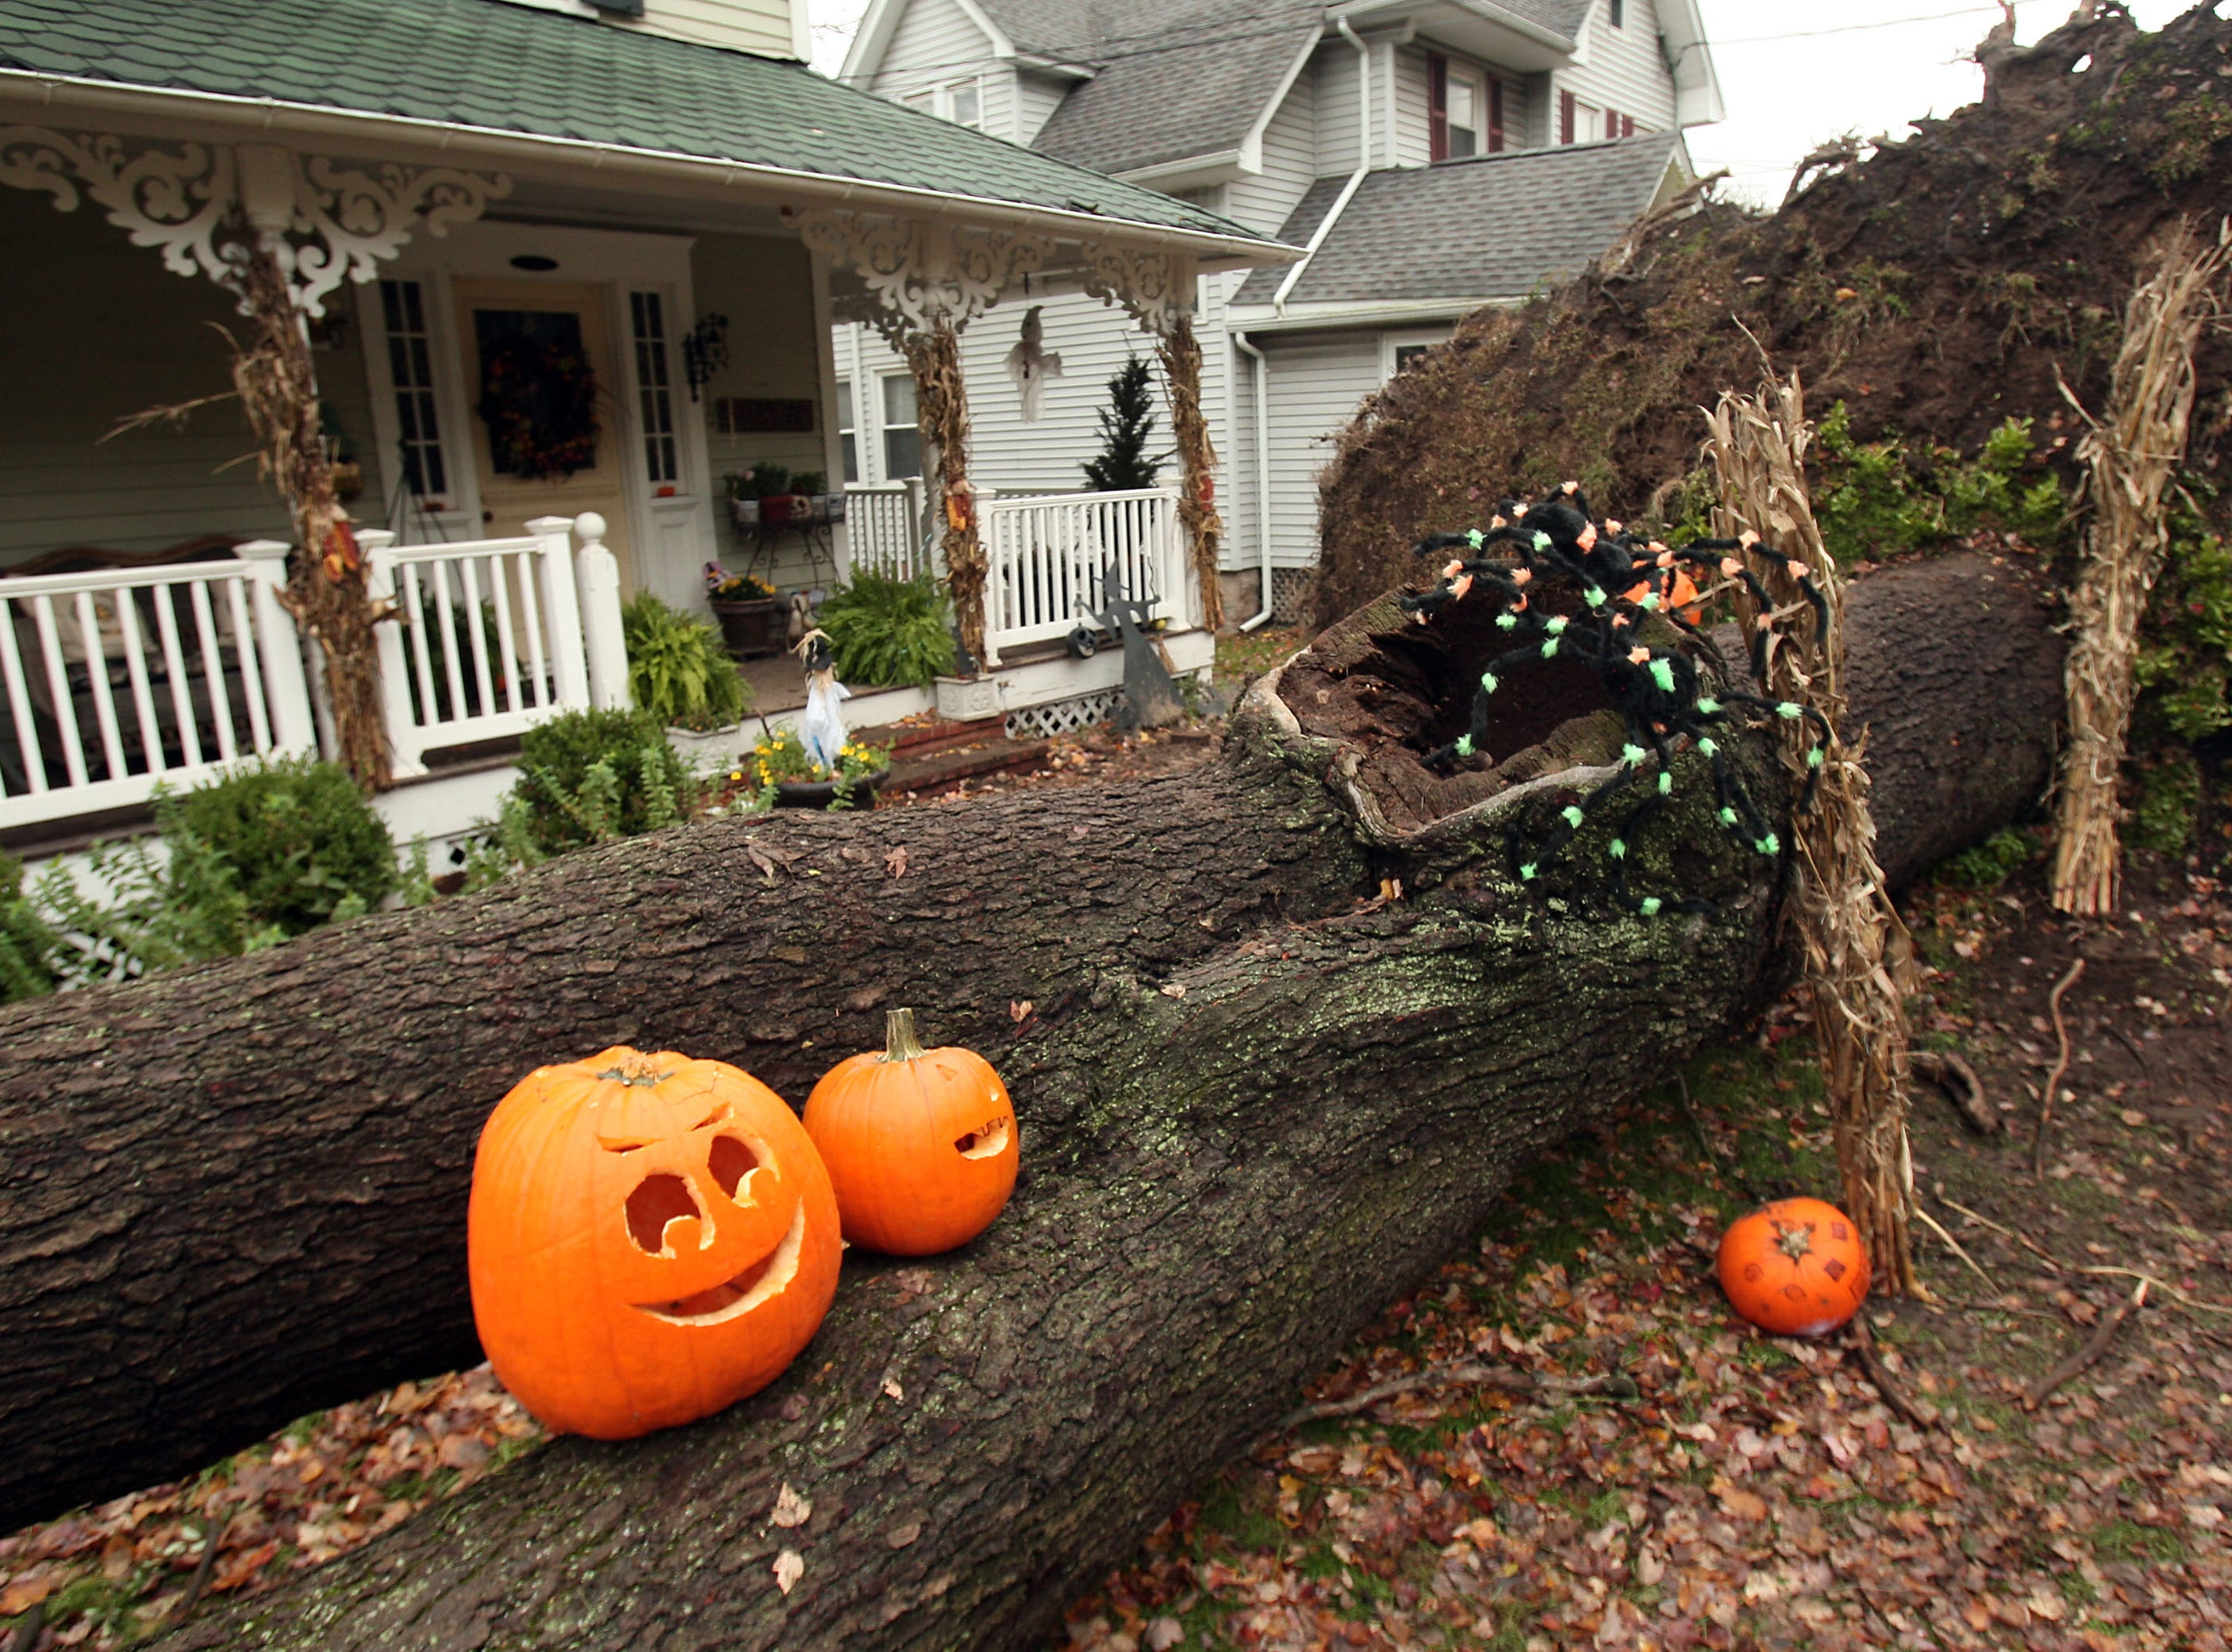 Morristown, NJ-- October 31, 2012--A family on Washington Street in Morristown, NJ hasn't lost their sense of humor in the aftermath of Hurricane Sandy. 